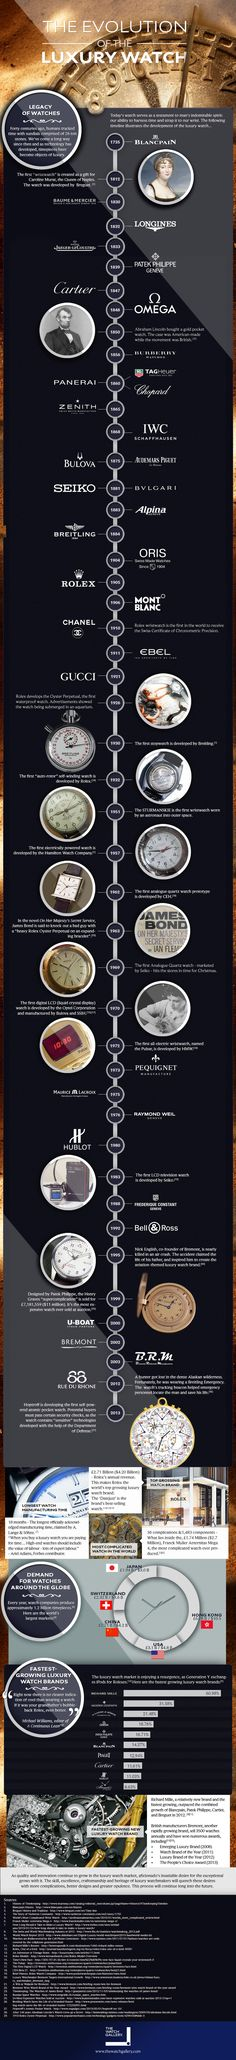 The Evolution of the Luxury Watch (infographic)